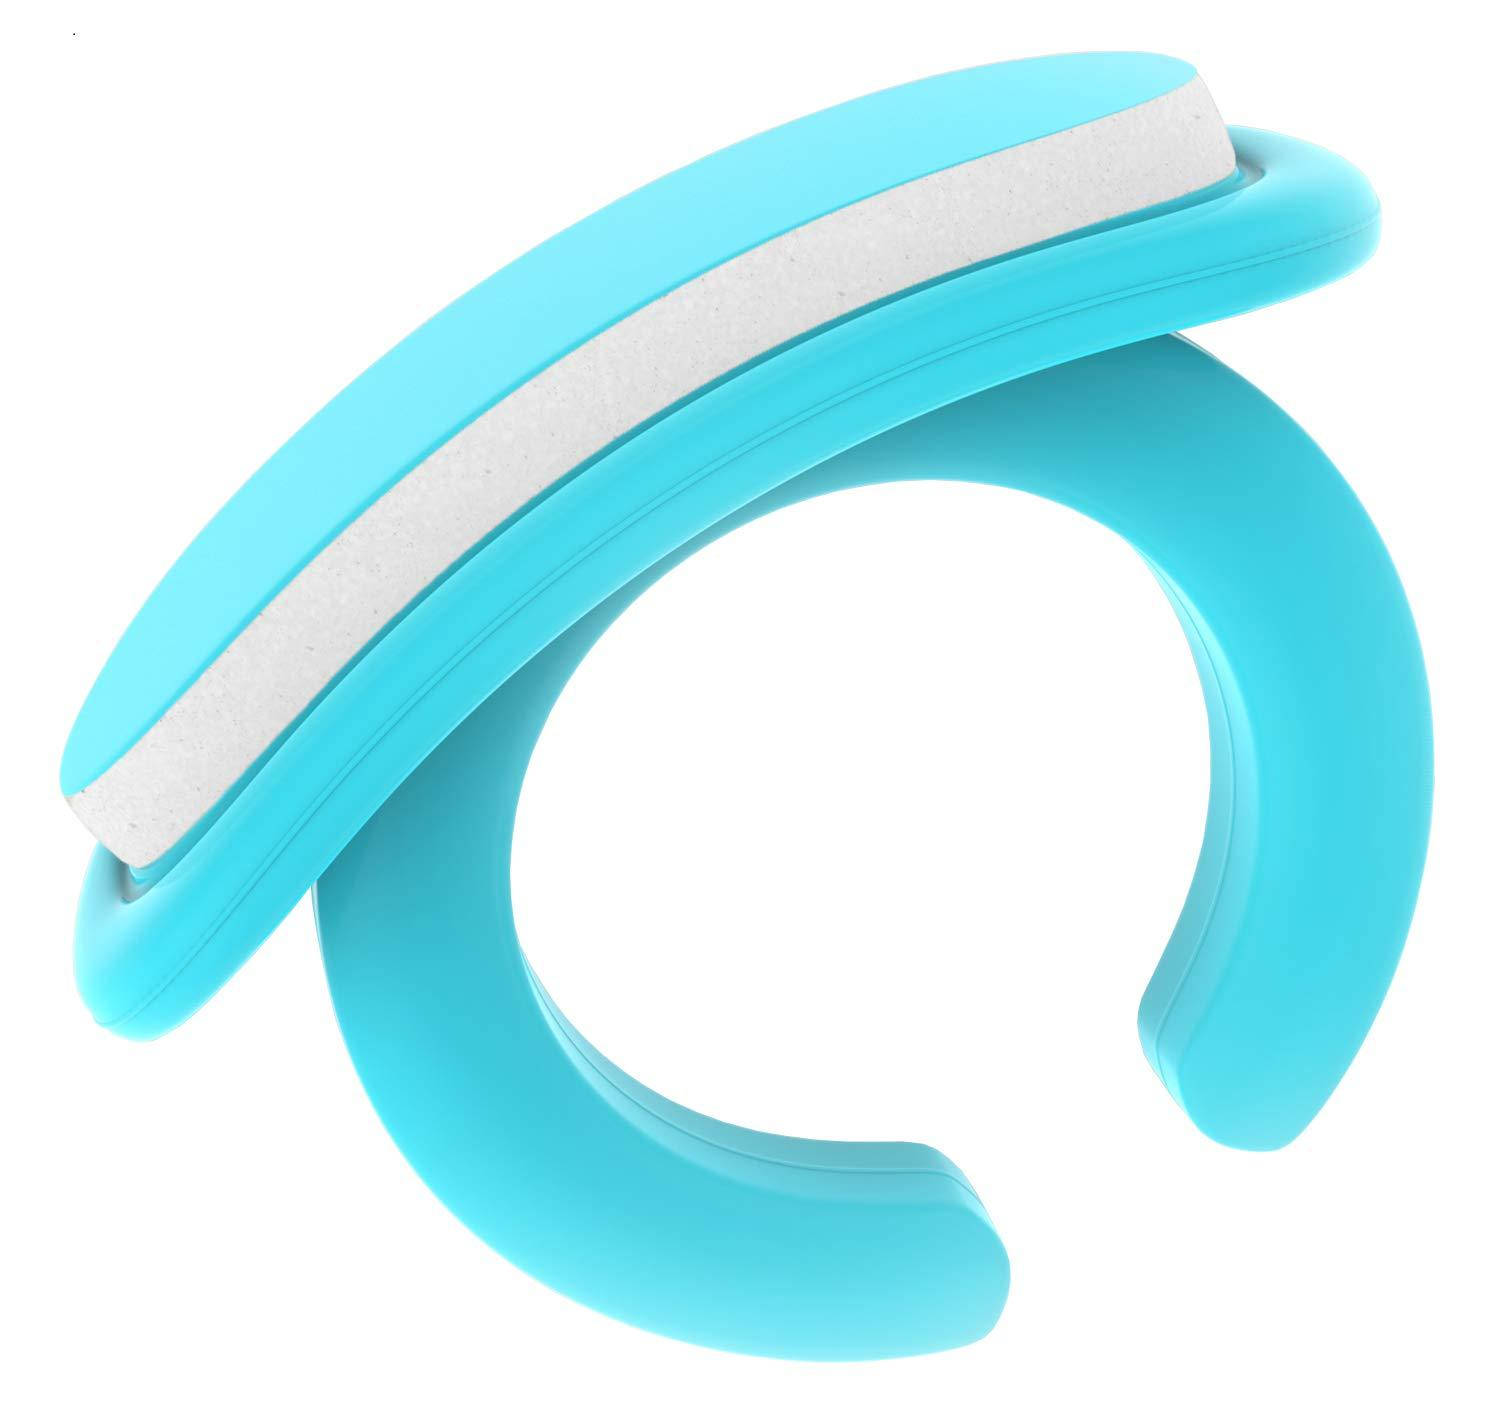 Wearable Baby Nail File with a Ring for Your Finger I Very Useful Baby Nail Care Set for Newborns I 18 Snap-Off Disposable Files/Baby Nail File (New Baby)